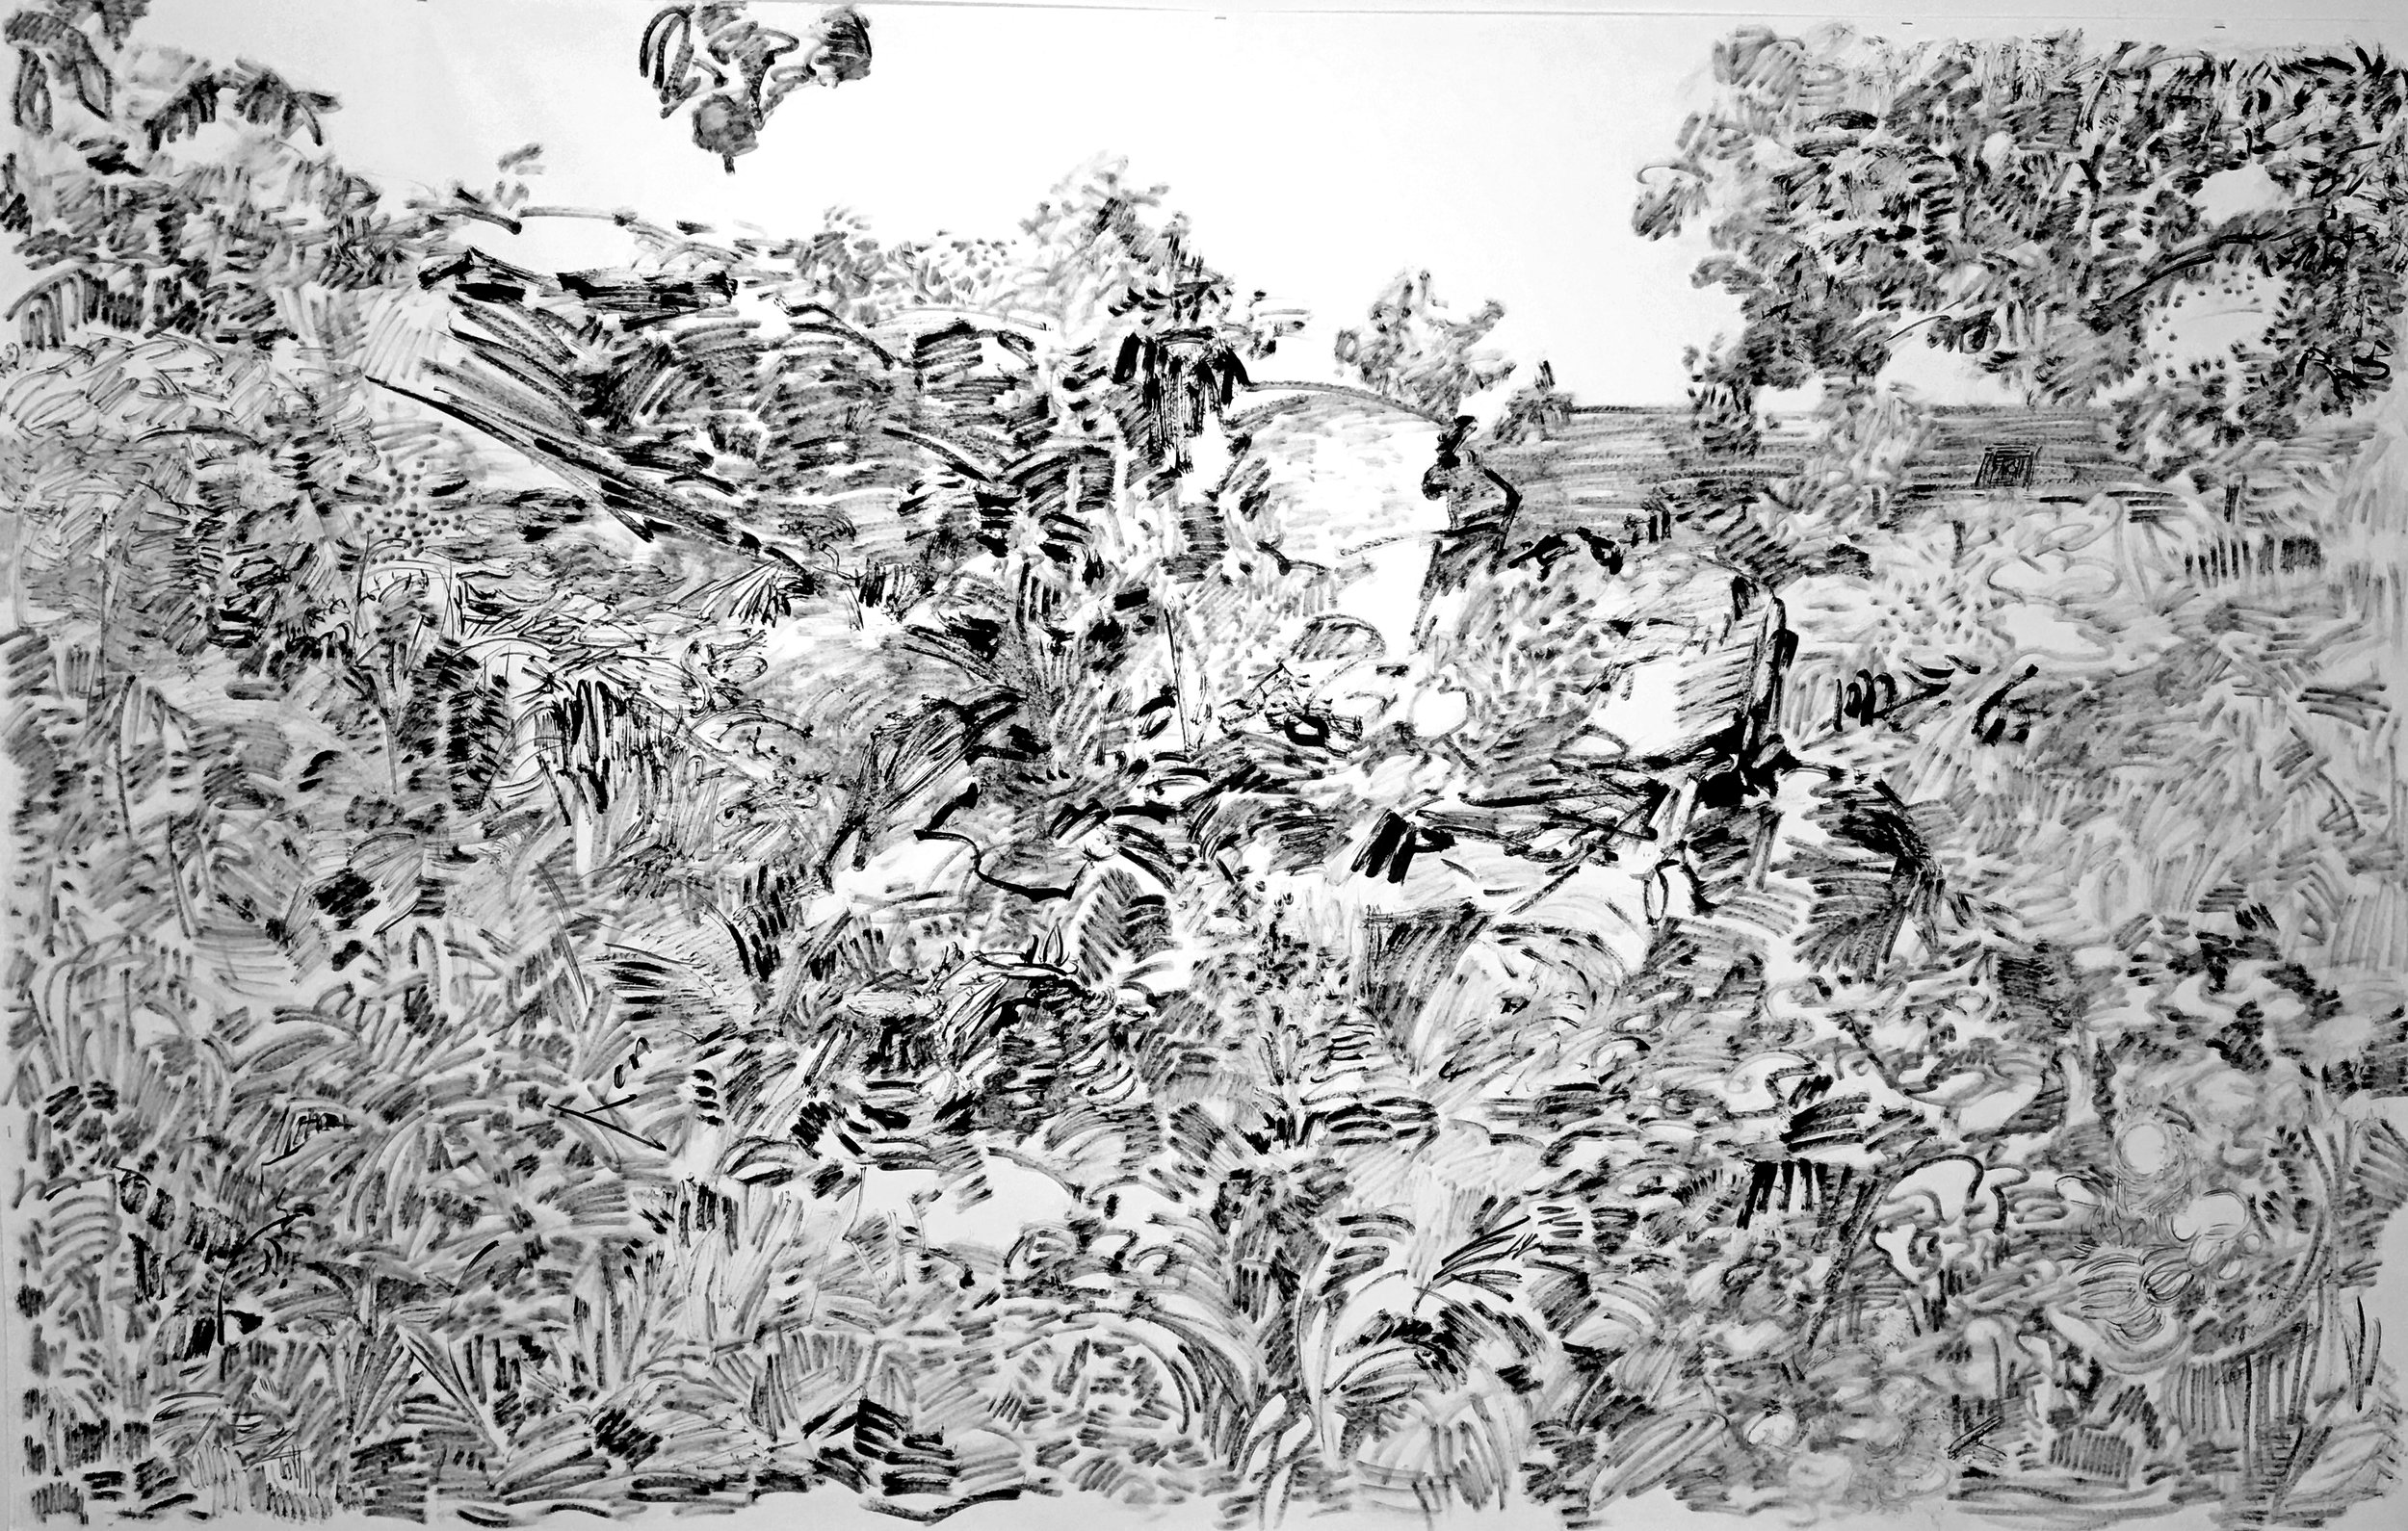 Ink on paper, 60x96 inches